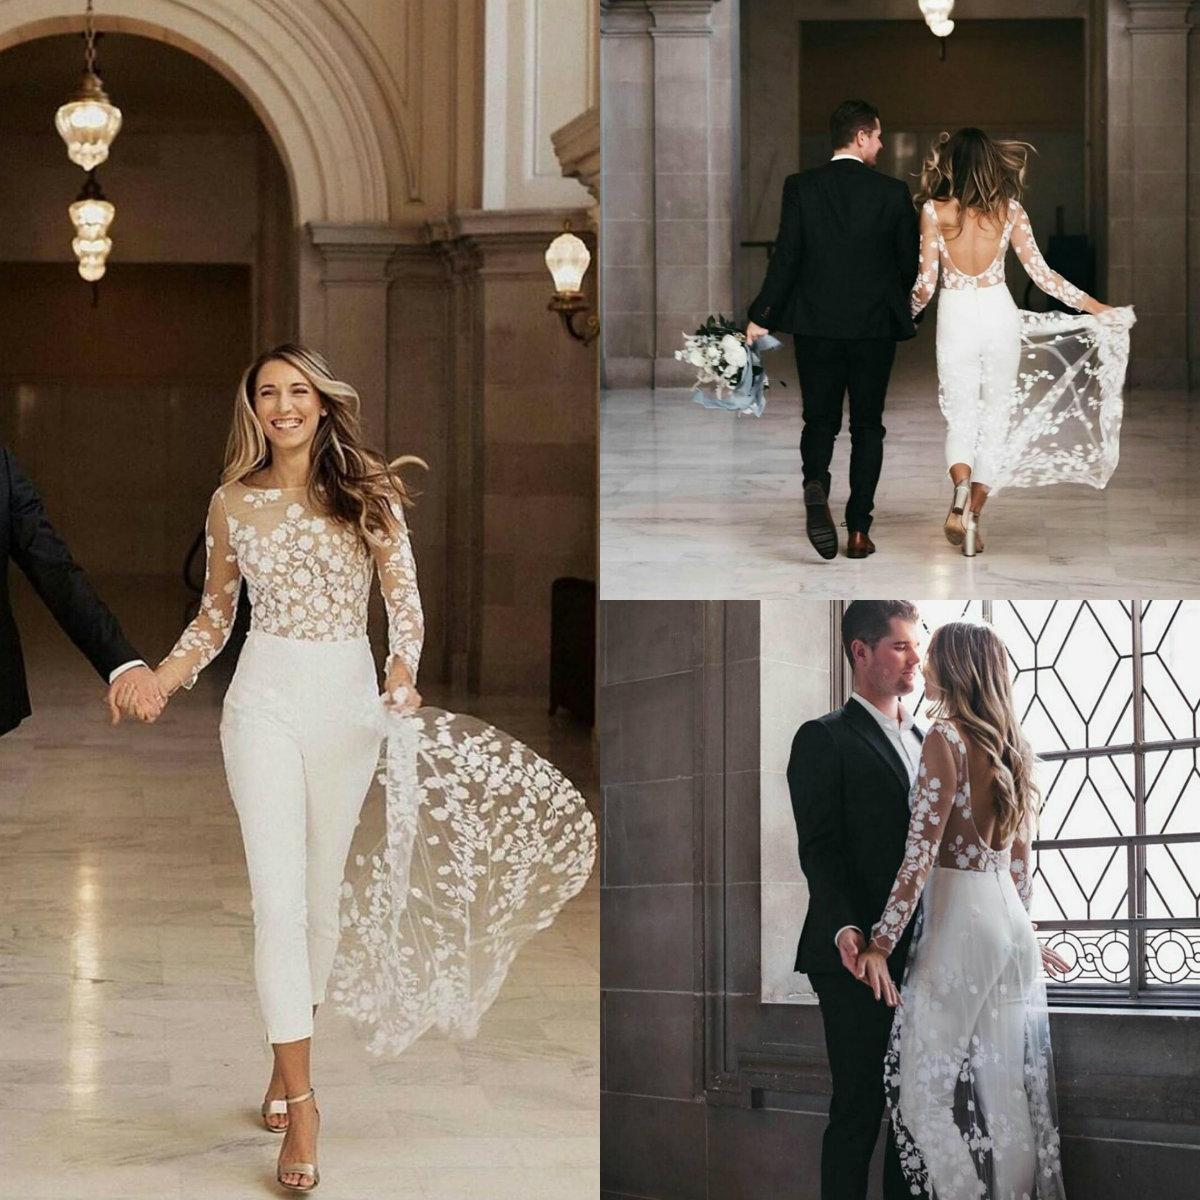 Jumpsuit 2021 Beach Boho Wedding Dresses Jewel Neck Long Sleeve Backless Ankle Length Bridal Outfit Lace Summer Wedding Gowns